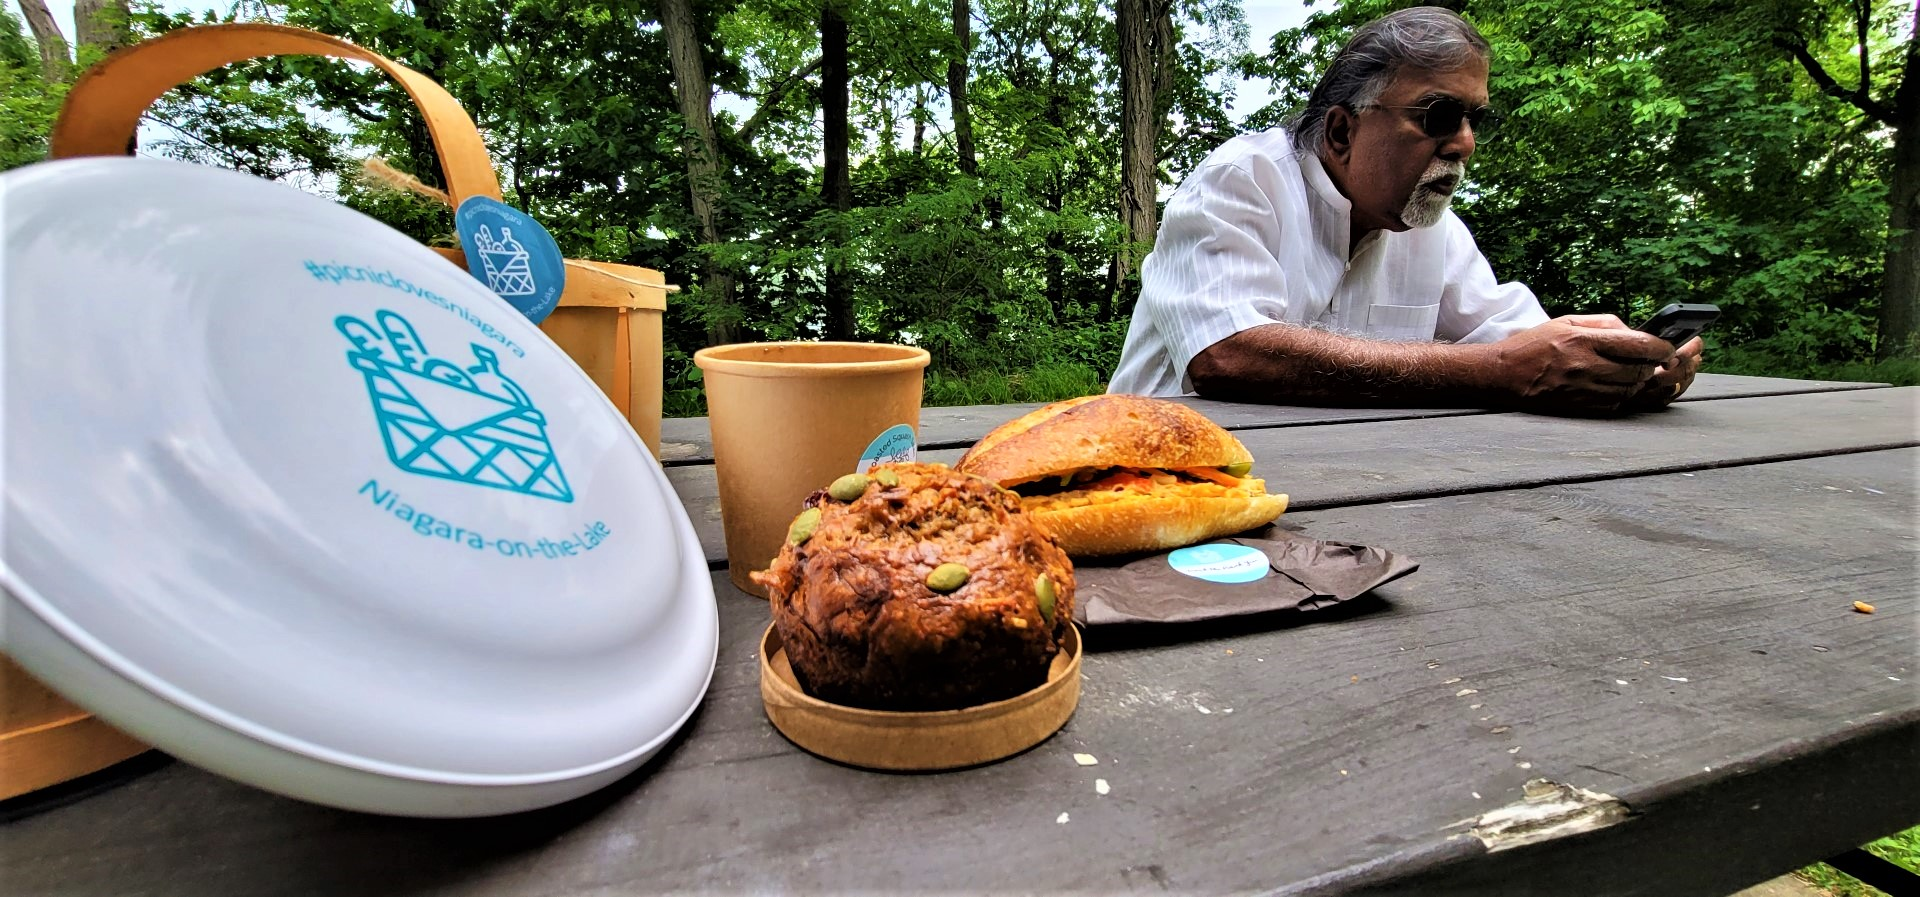 Elderly gentleman on phone at picnic table with frisbee and sandwich